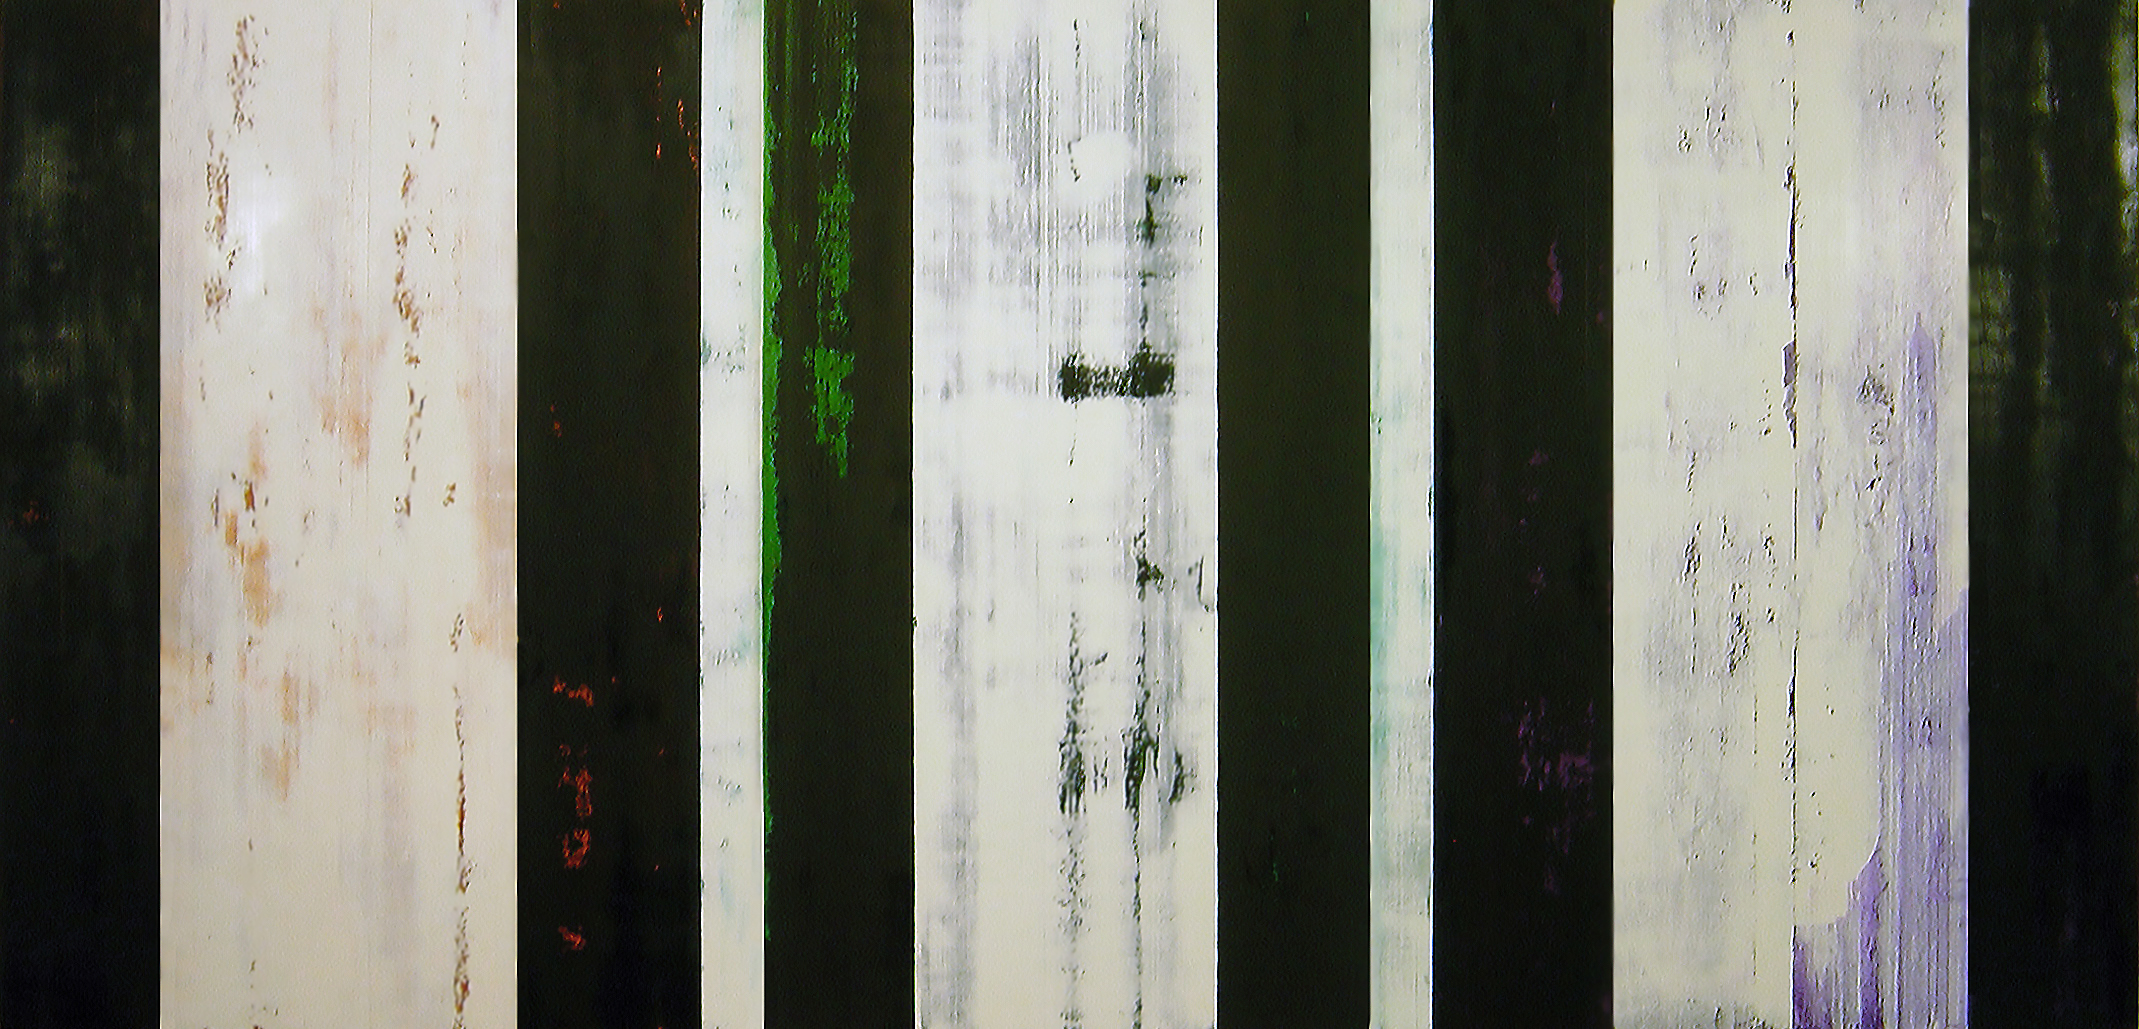 ISIS 8: 2008, Oil, acrylic on canvas over panels, 48 x 108 inches.